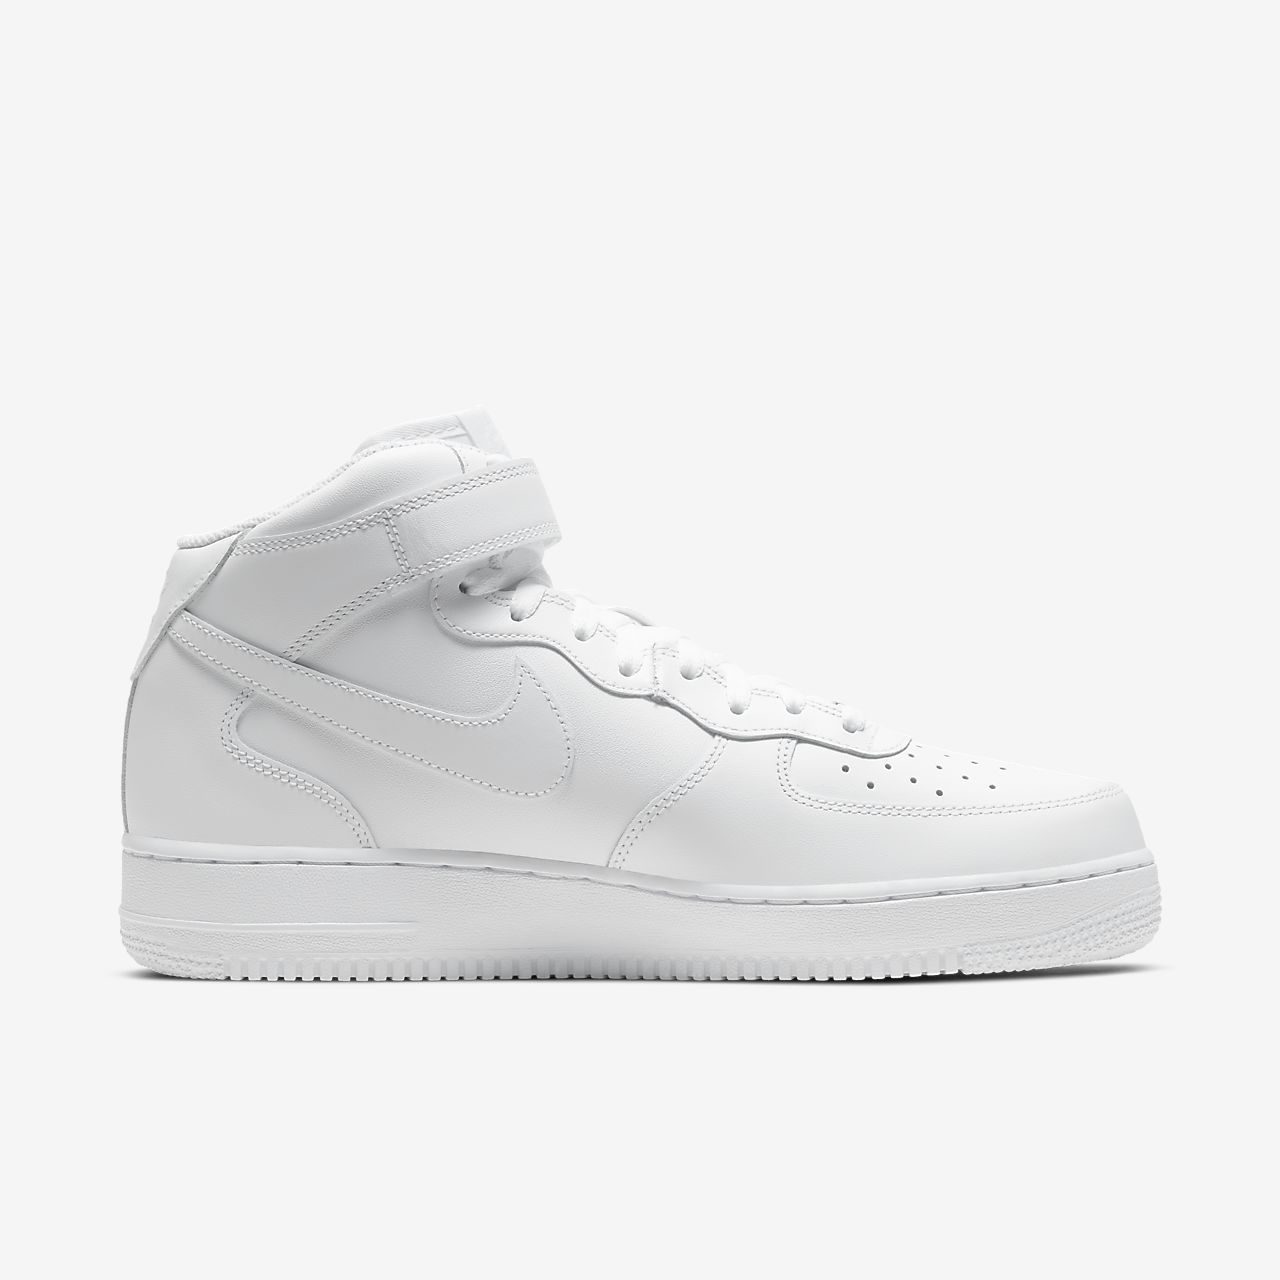 rencontrer 6ab18 ea75c Chaussure Nike Air Force 1 Mid '07 pour Homme